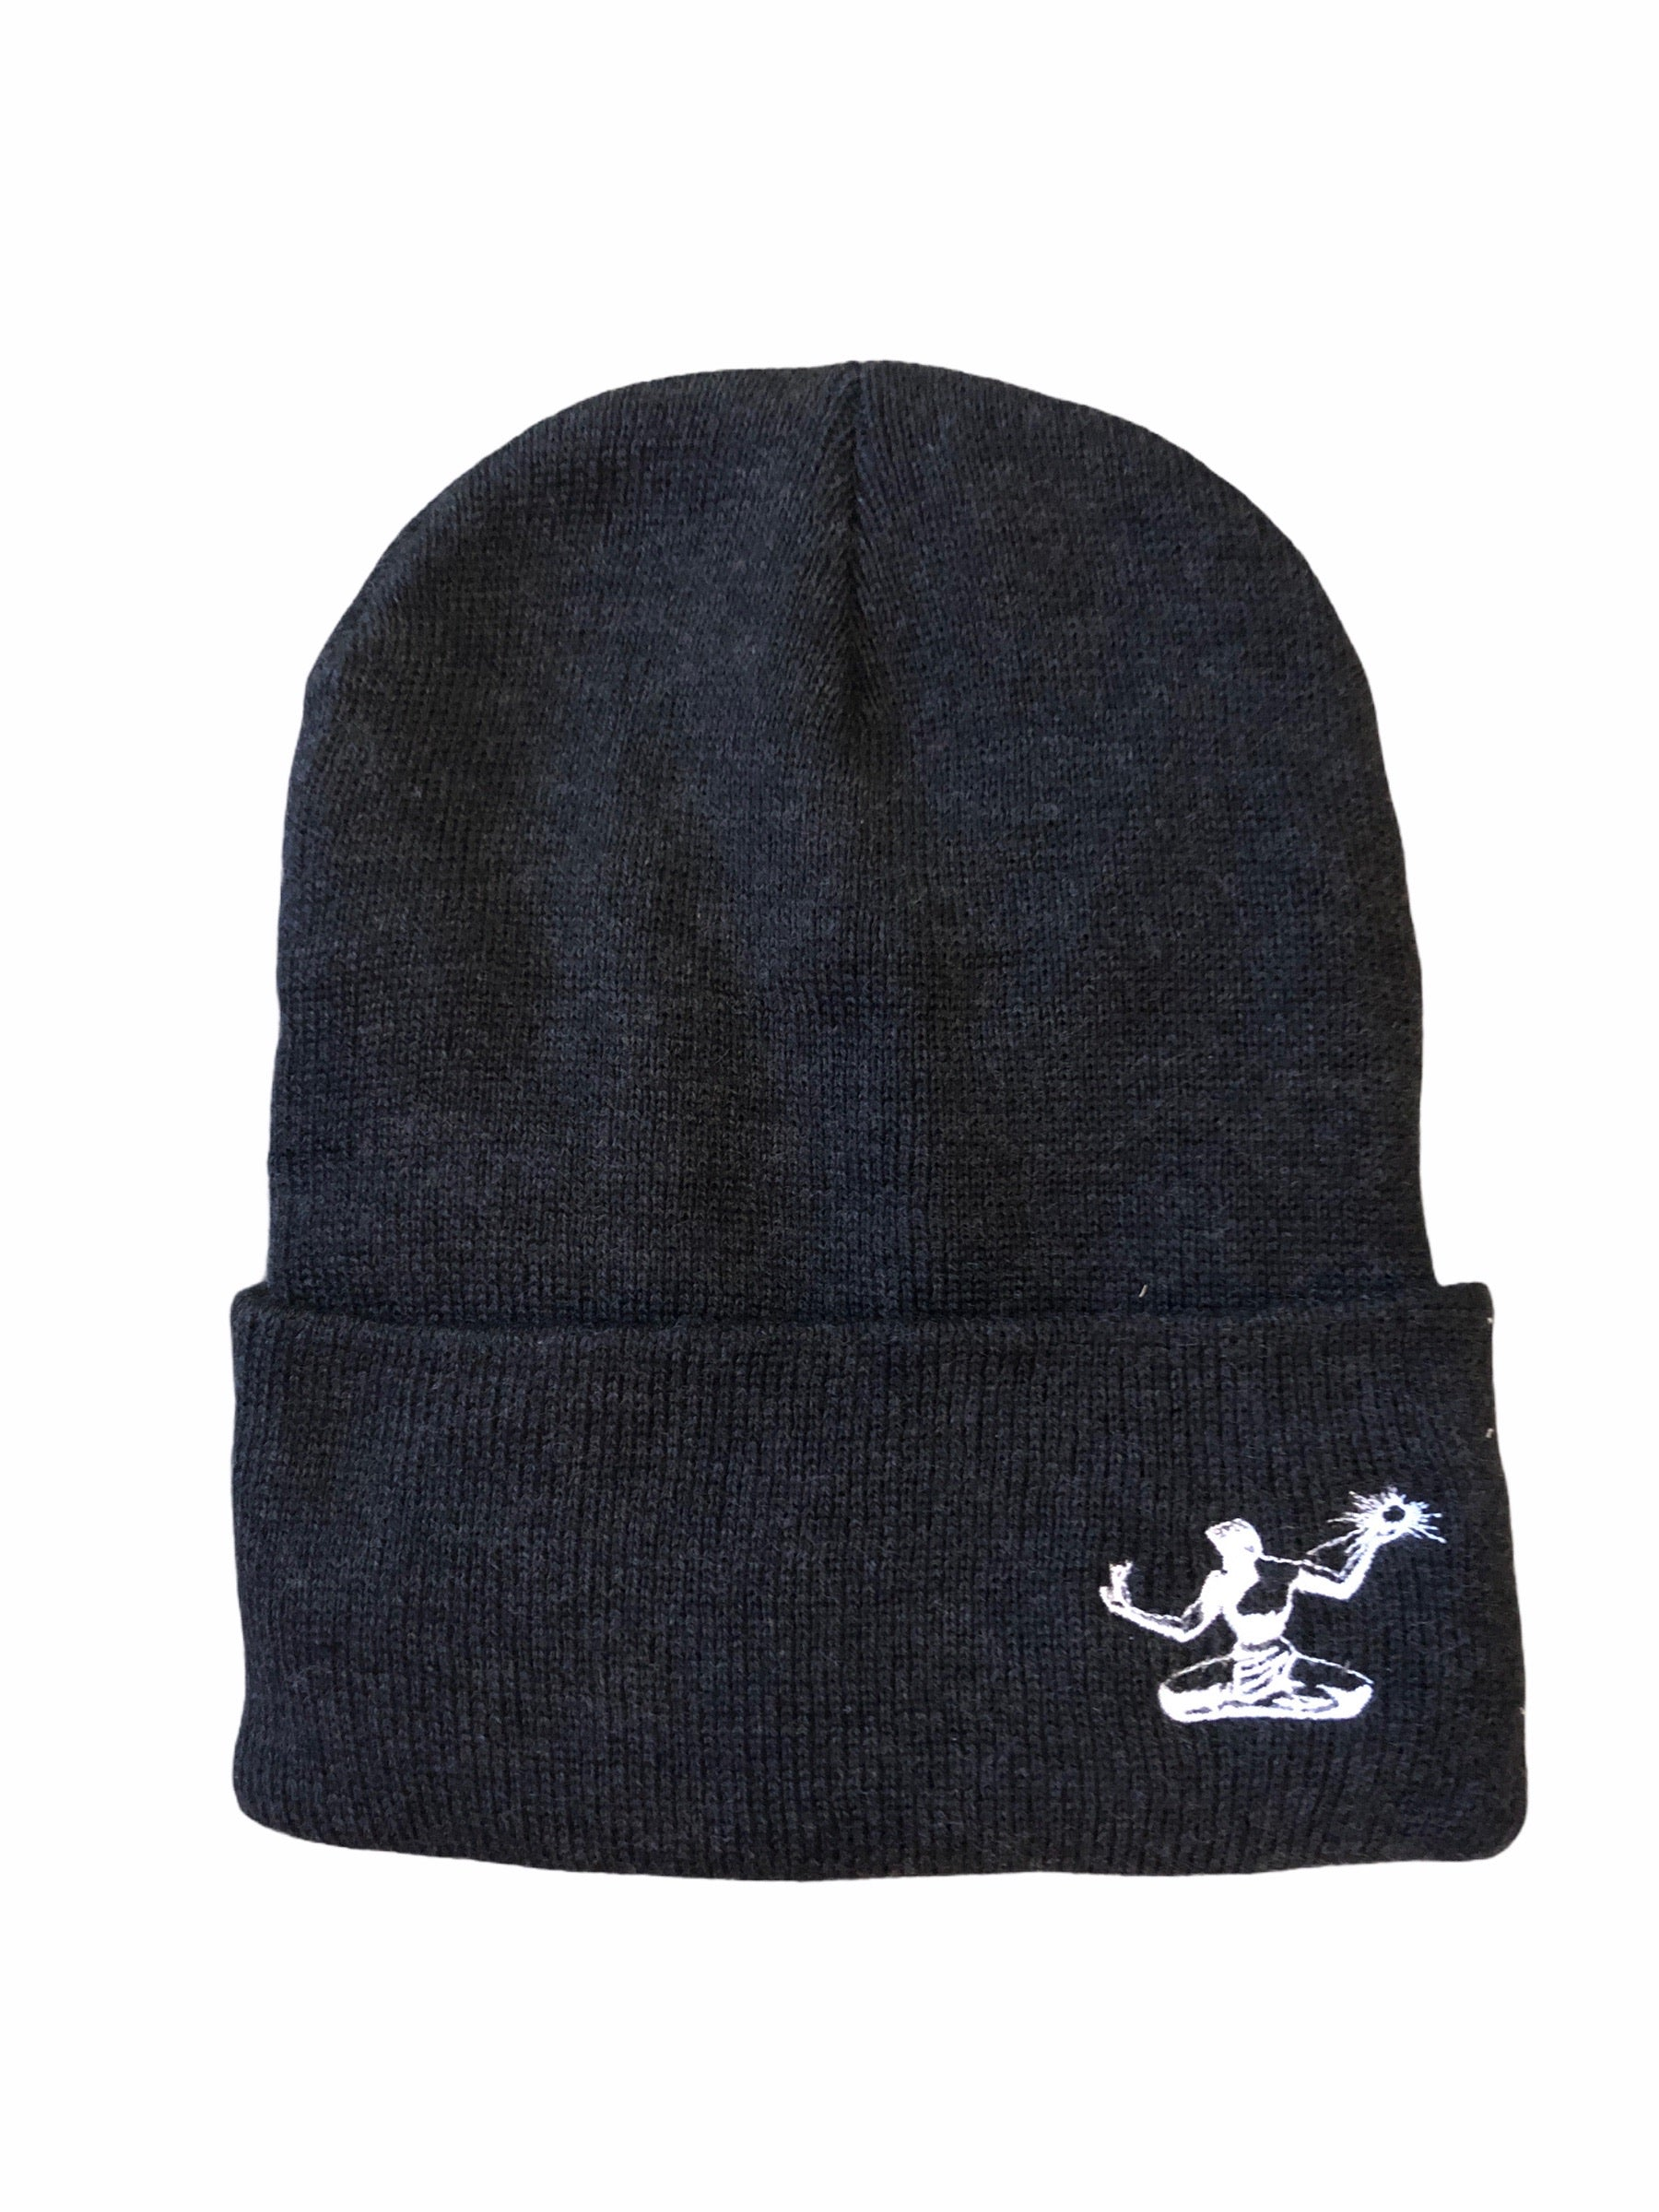 Spirit of Detroit Lined Beanie / Charcoal - Pure Detroit